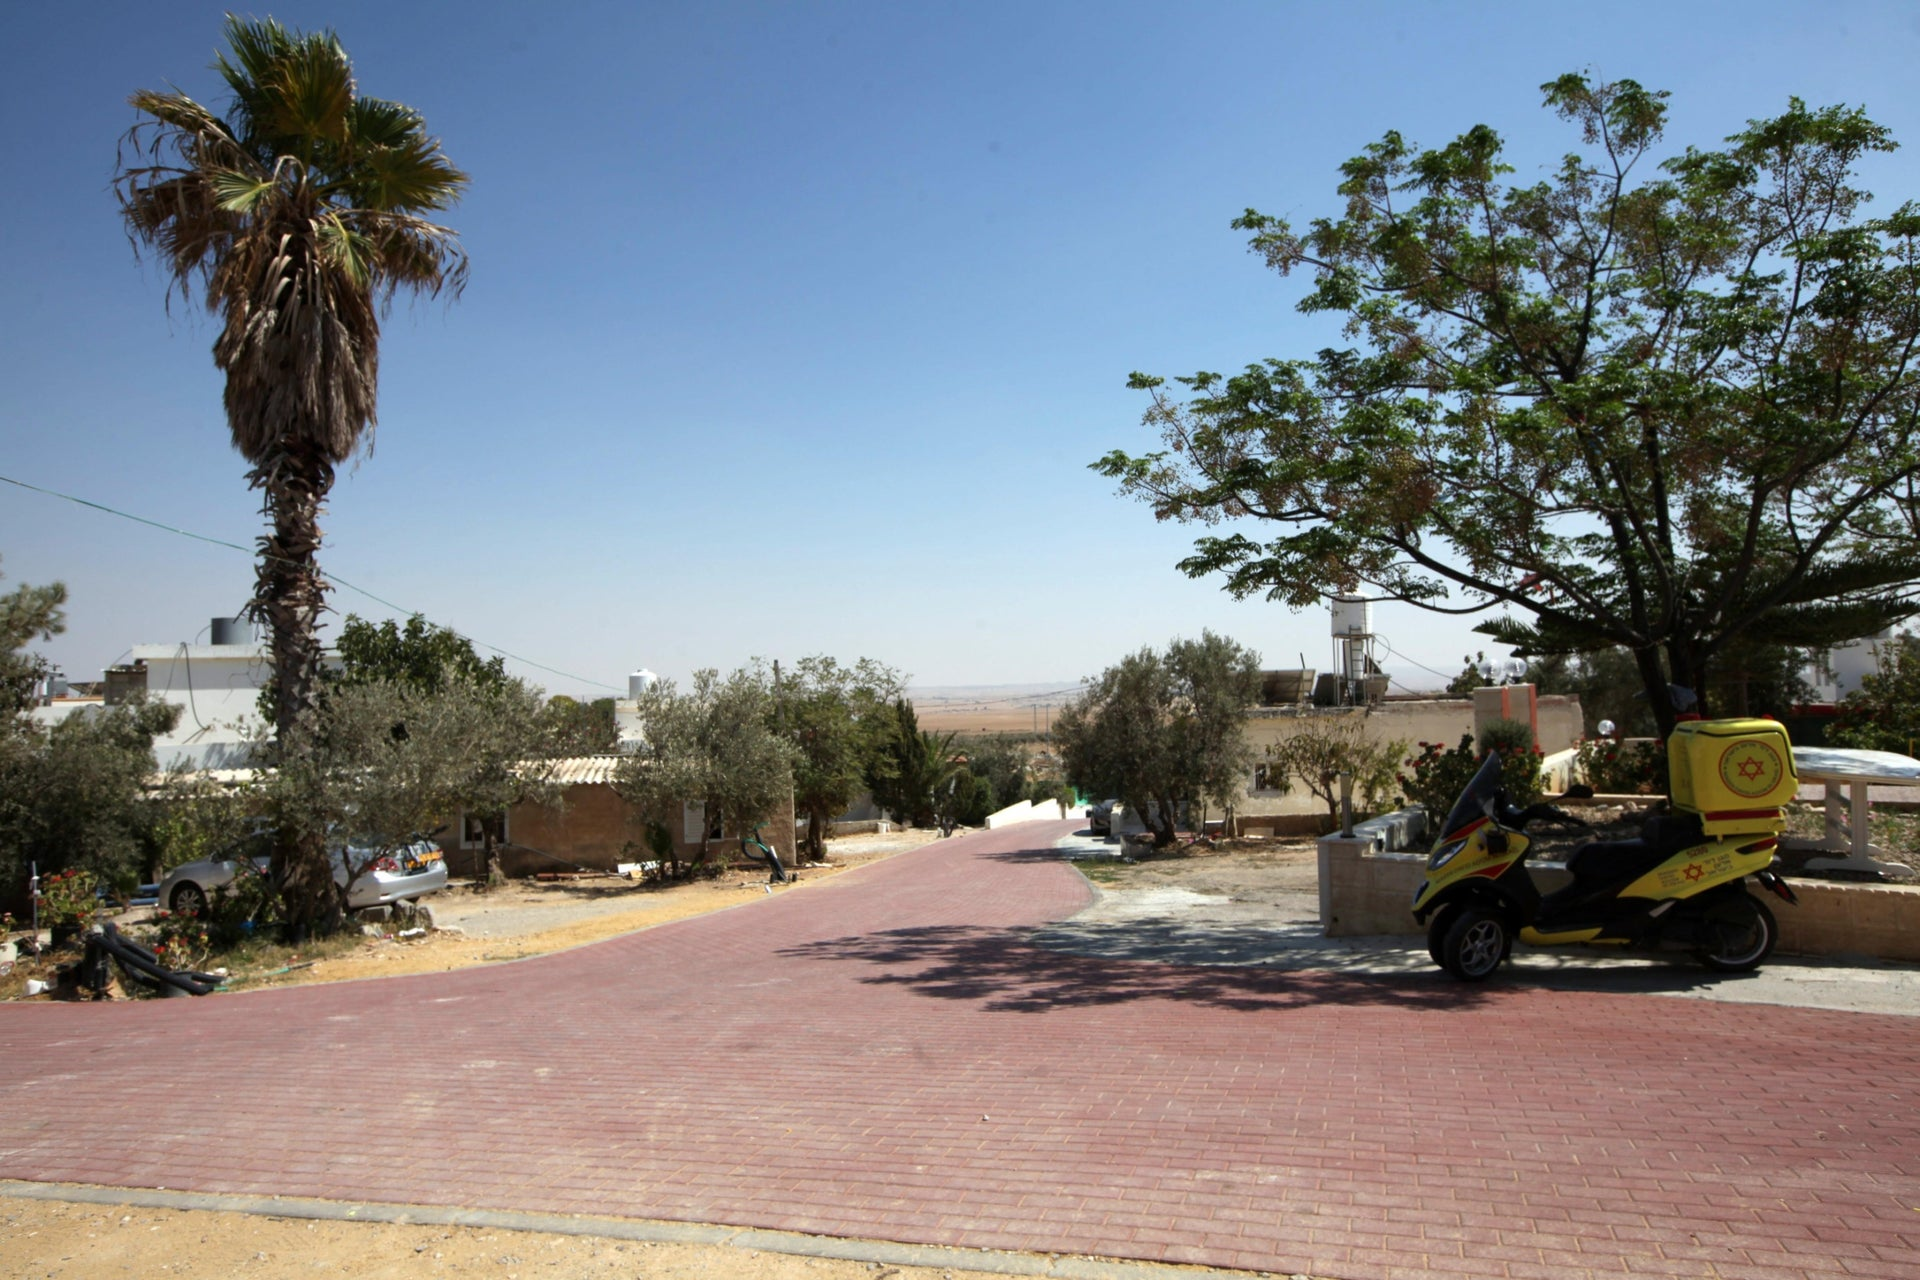 Drijat, the only non-Bedouin Arab village in the Negev desert, southern Israel.